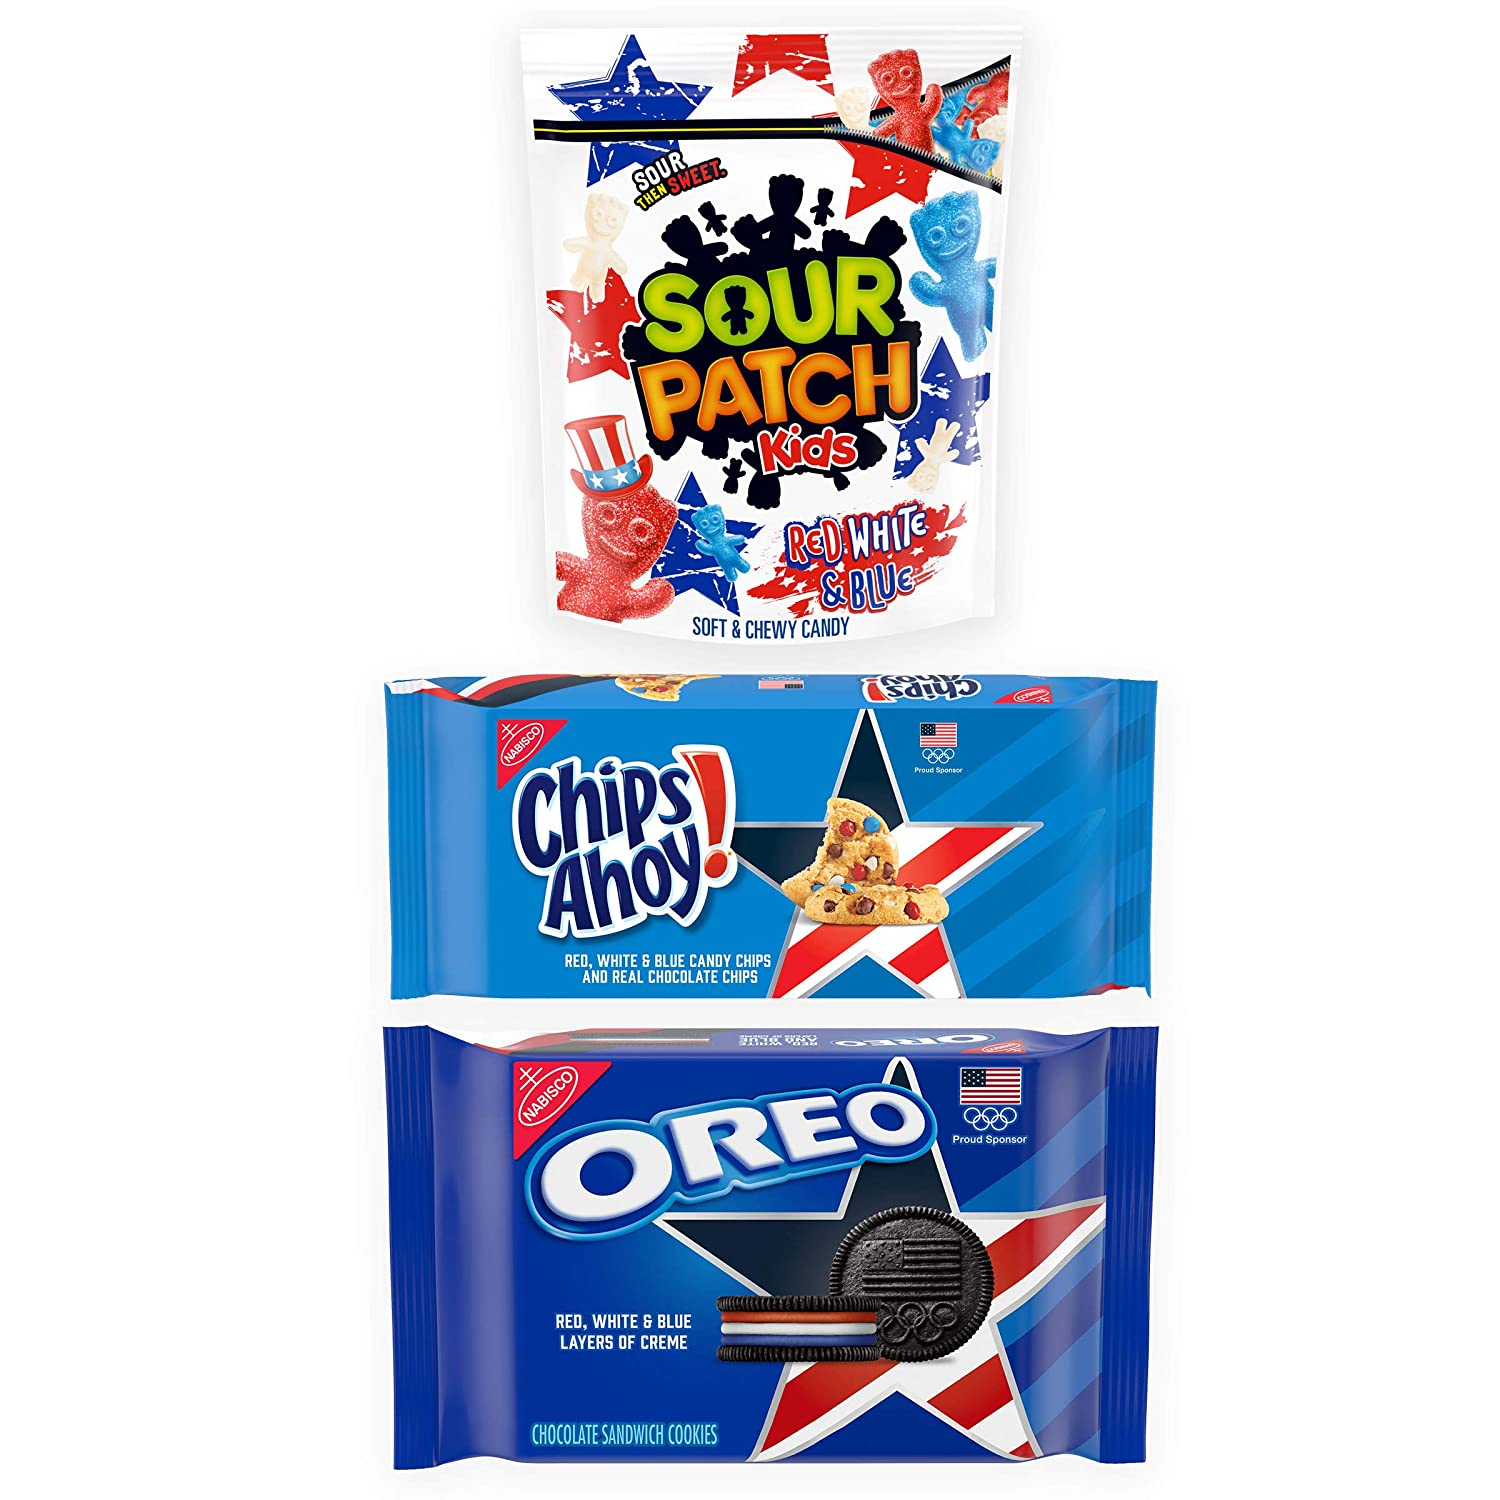 Team USA OREO Chocolate Sandwich Cookies, Team USA CHIPS AHOY! Chocolate Chip Cookies & Red, White & Blue SOUR PATCH KIDS Sweet & Sour Variety Pack, 3 Packs